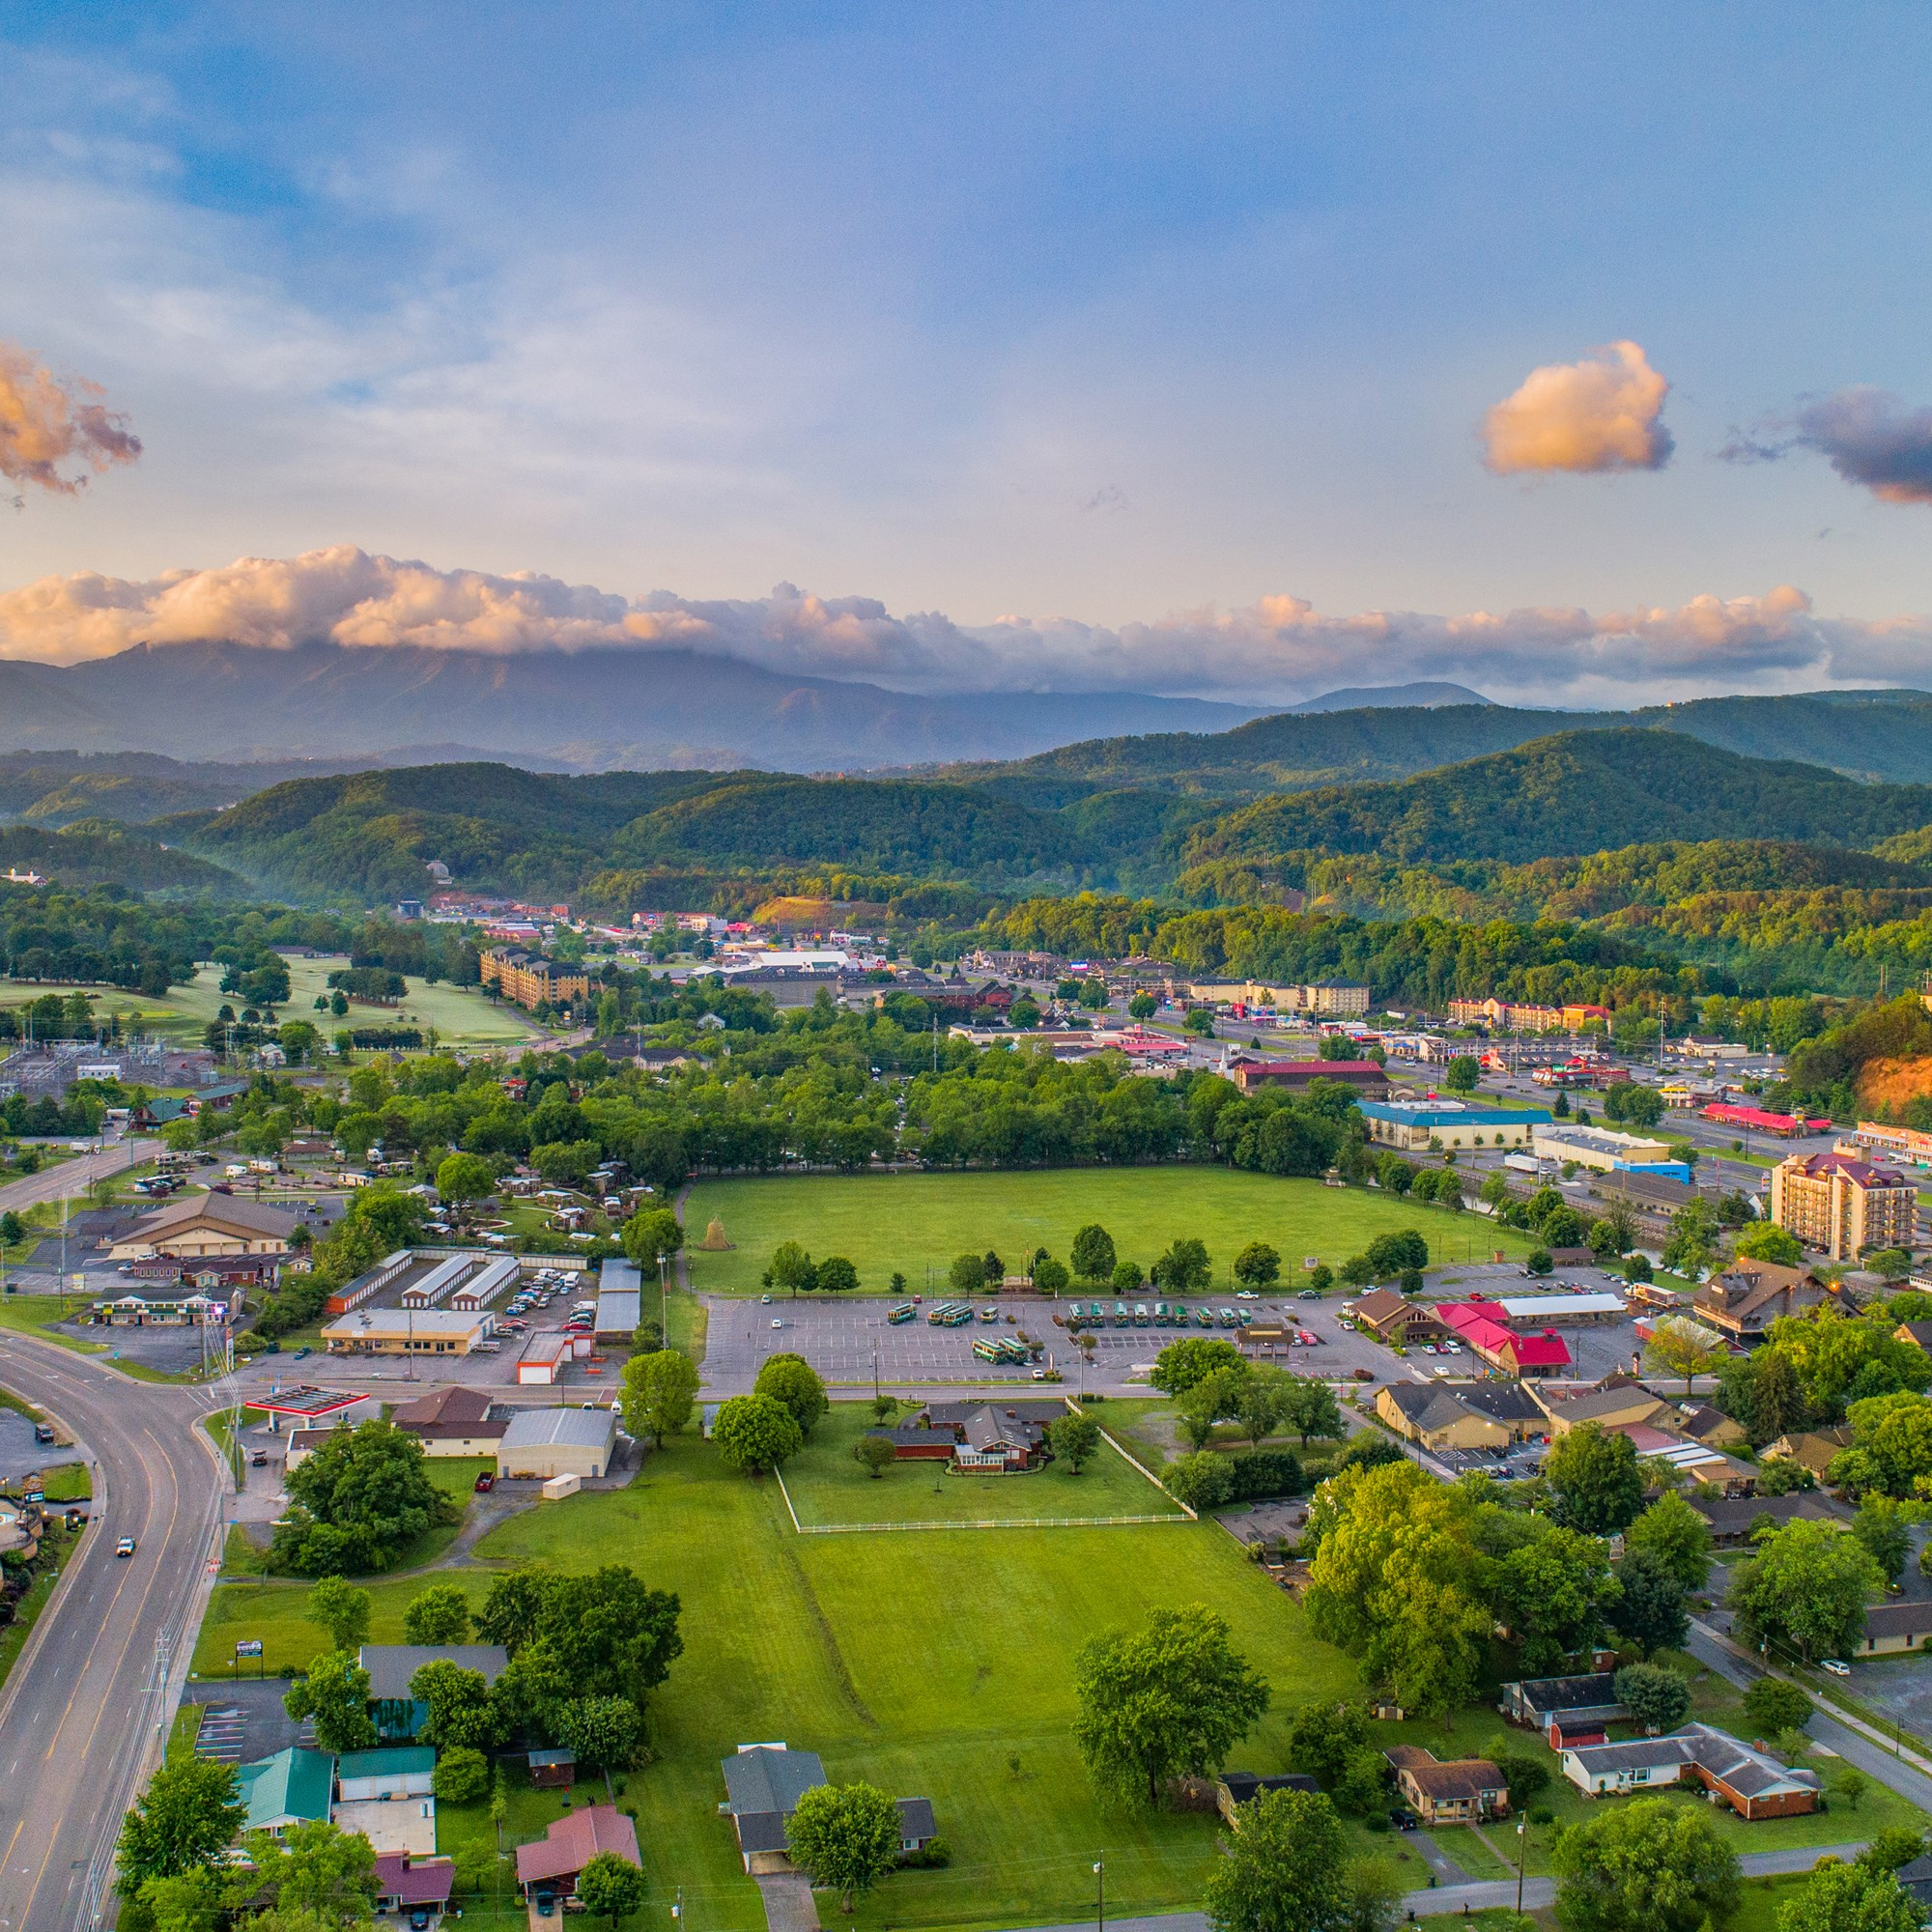 Rv Trader Bc >> Pigeon Forge Tennessee Area Attractions and Activities | Pigeon Forge / Gatlinburg KOA